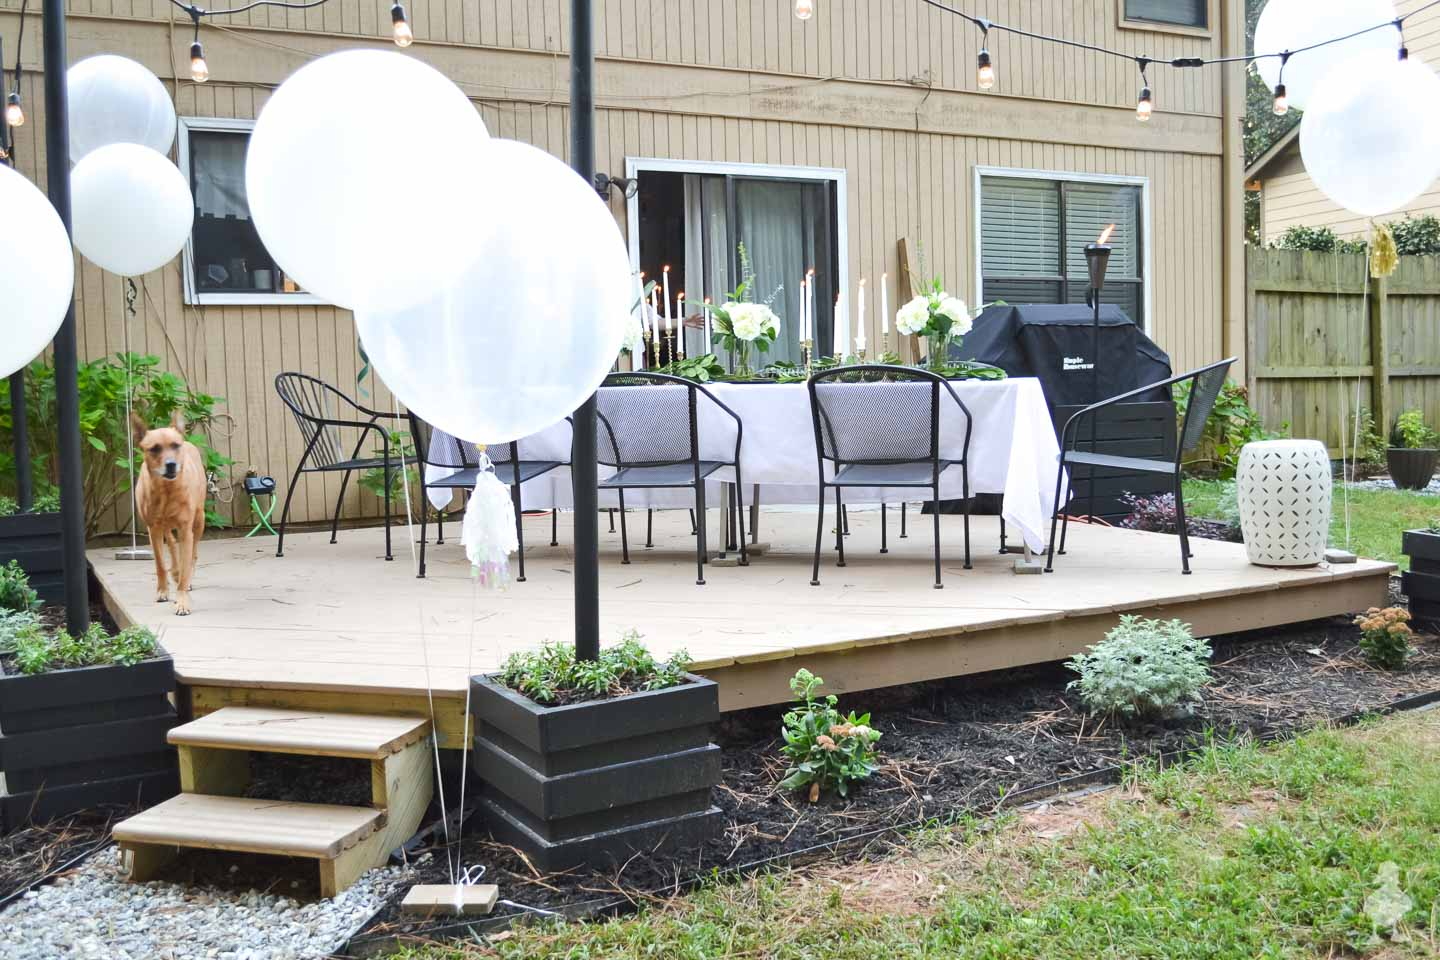 tan floating deck in back yard with white balloons and black chairs